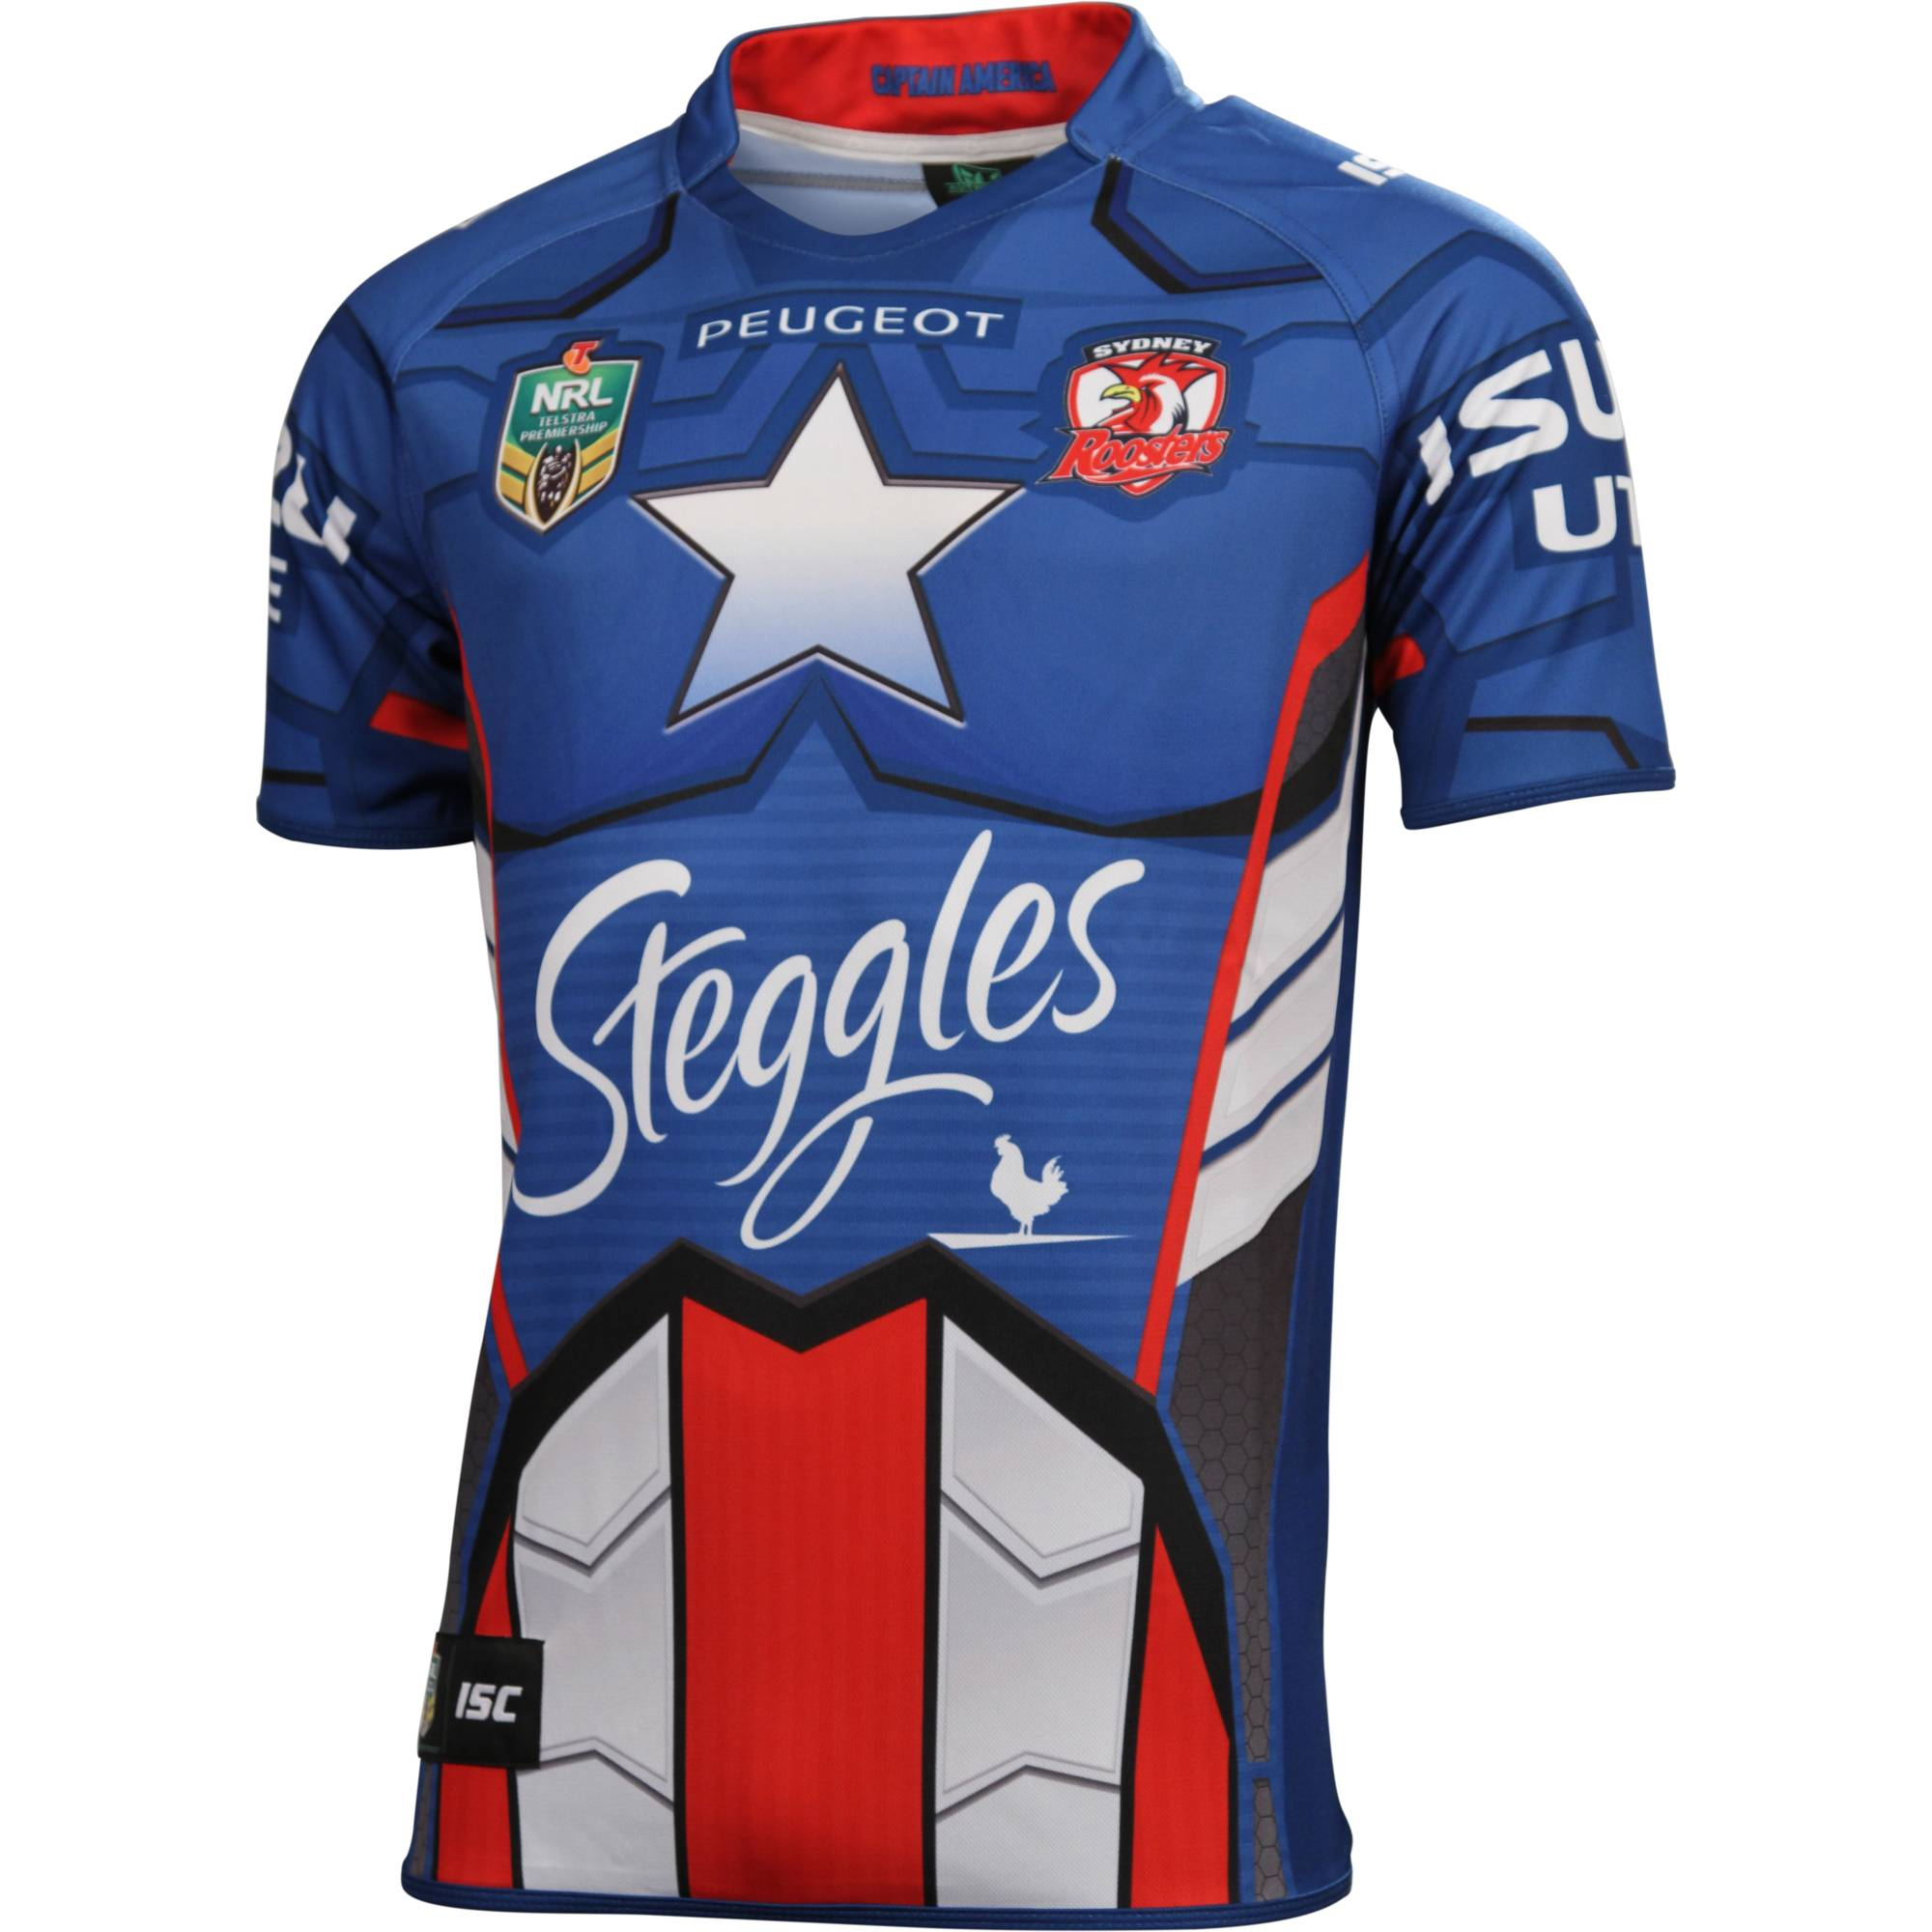 a9269835922 NRL 2014 ISC Marvel Heroes Shirts – Rugby Shirt Watch